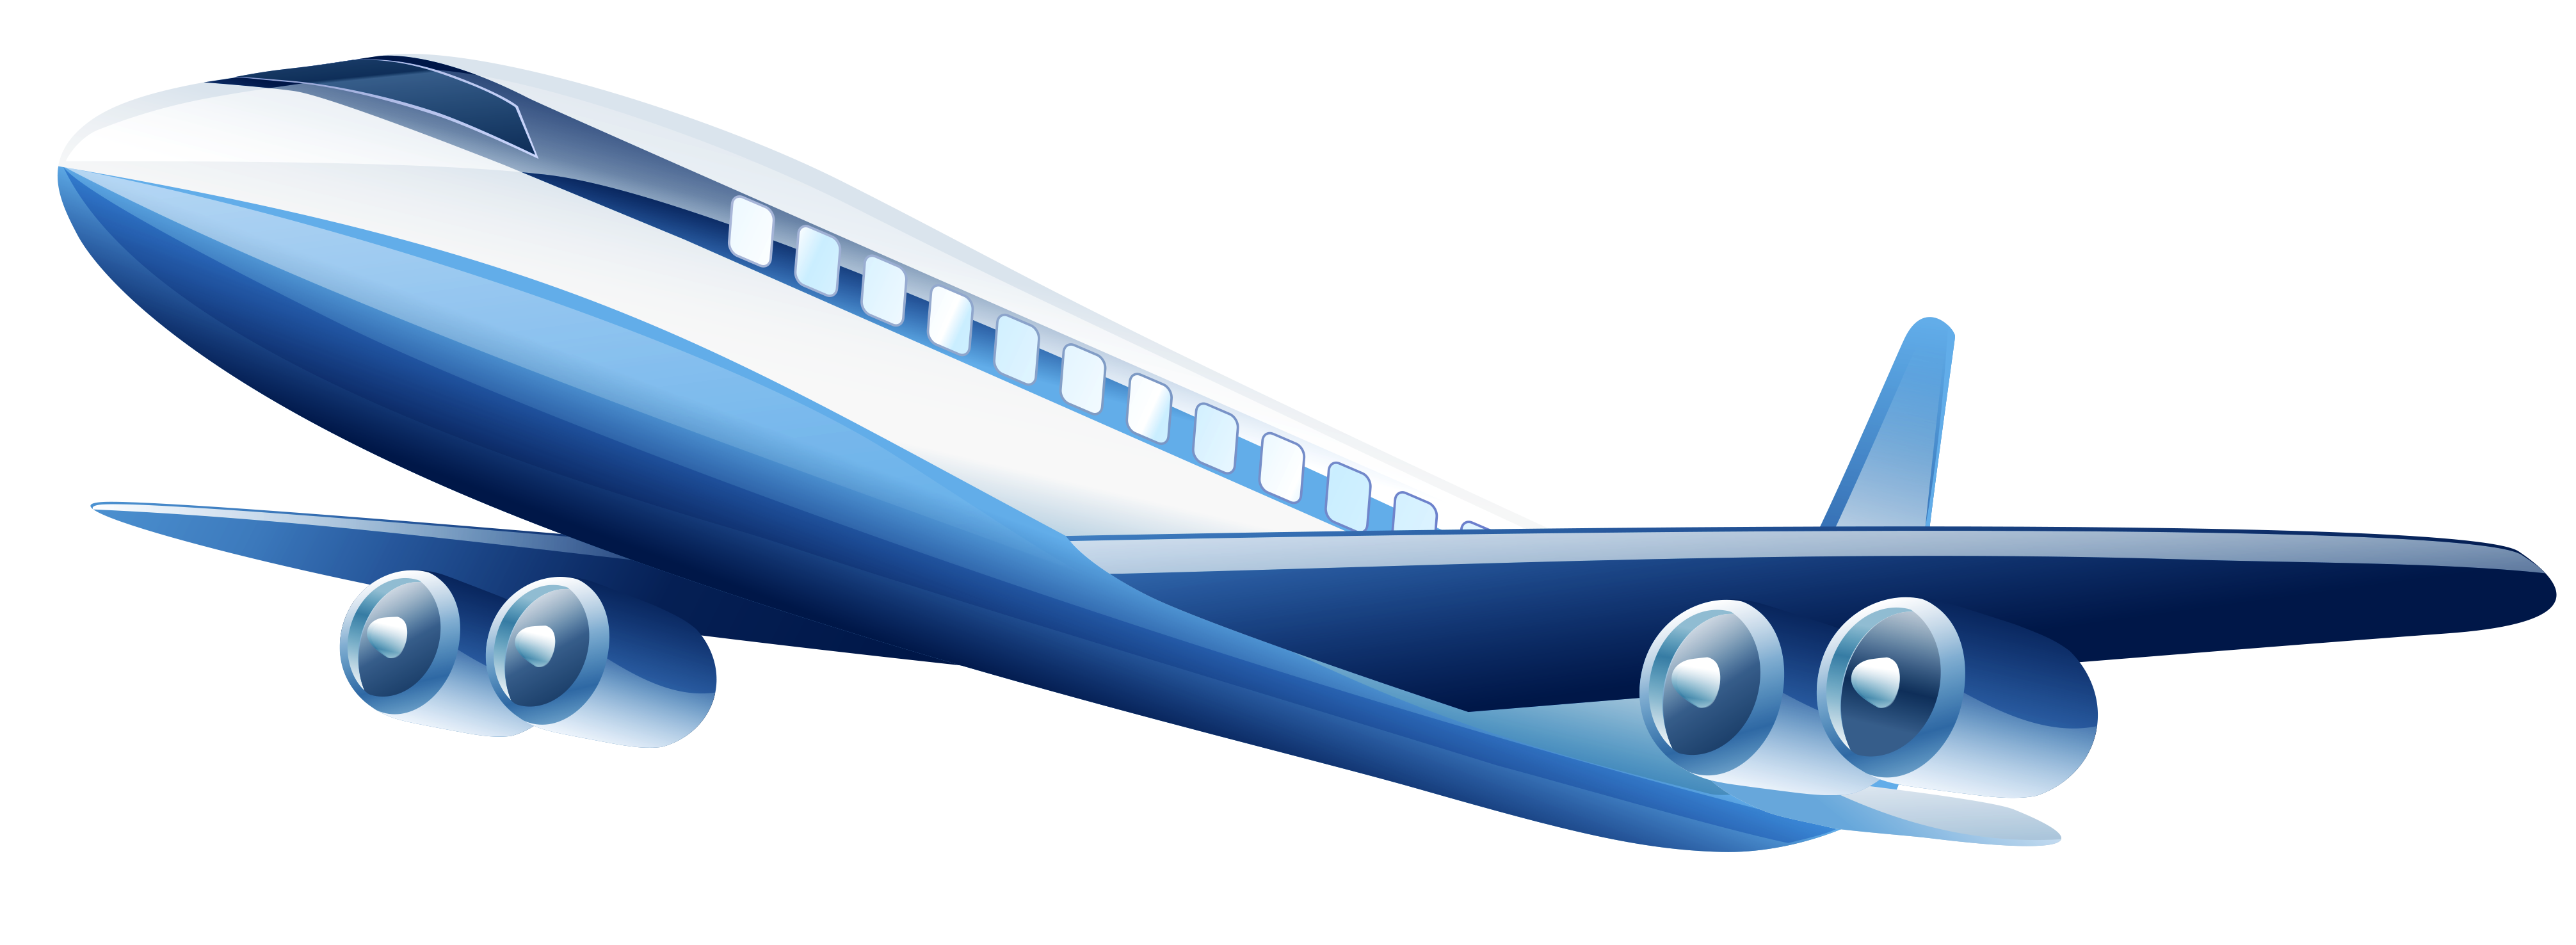 Airplane clipart free clipart free stock Airplane Clipart | Gallery Yopriceville - High-Quality Images and ... clipart free stock